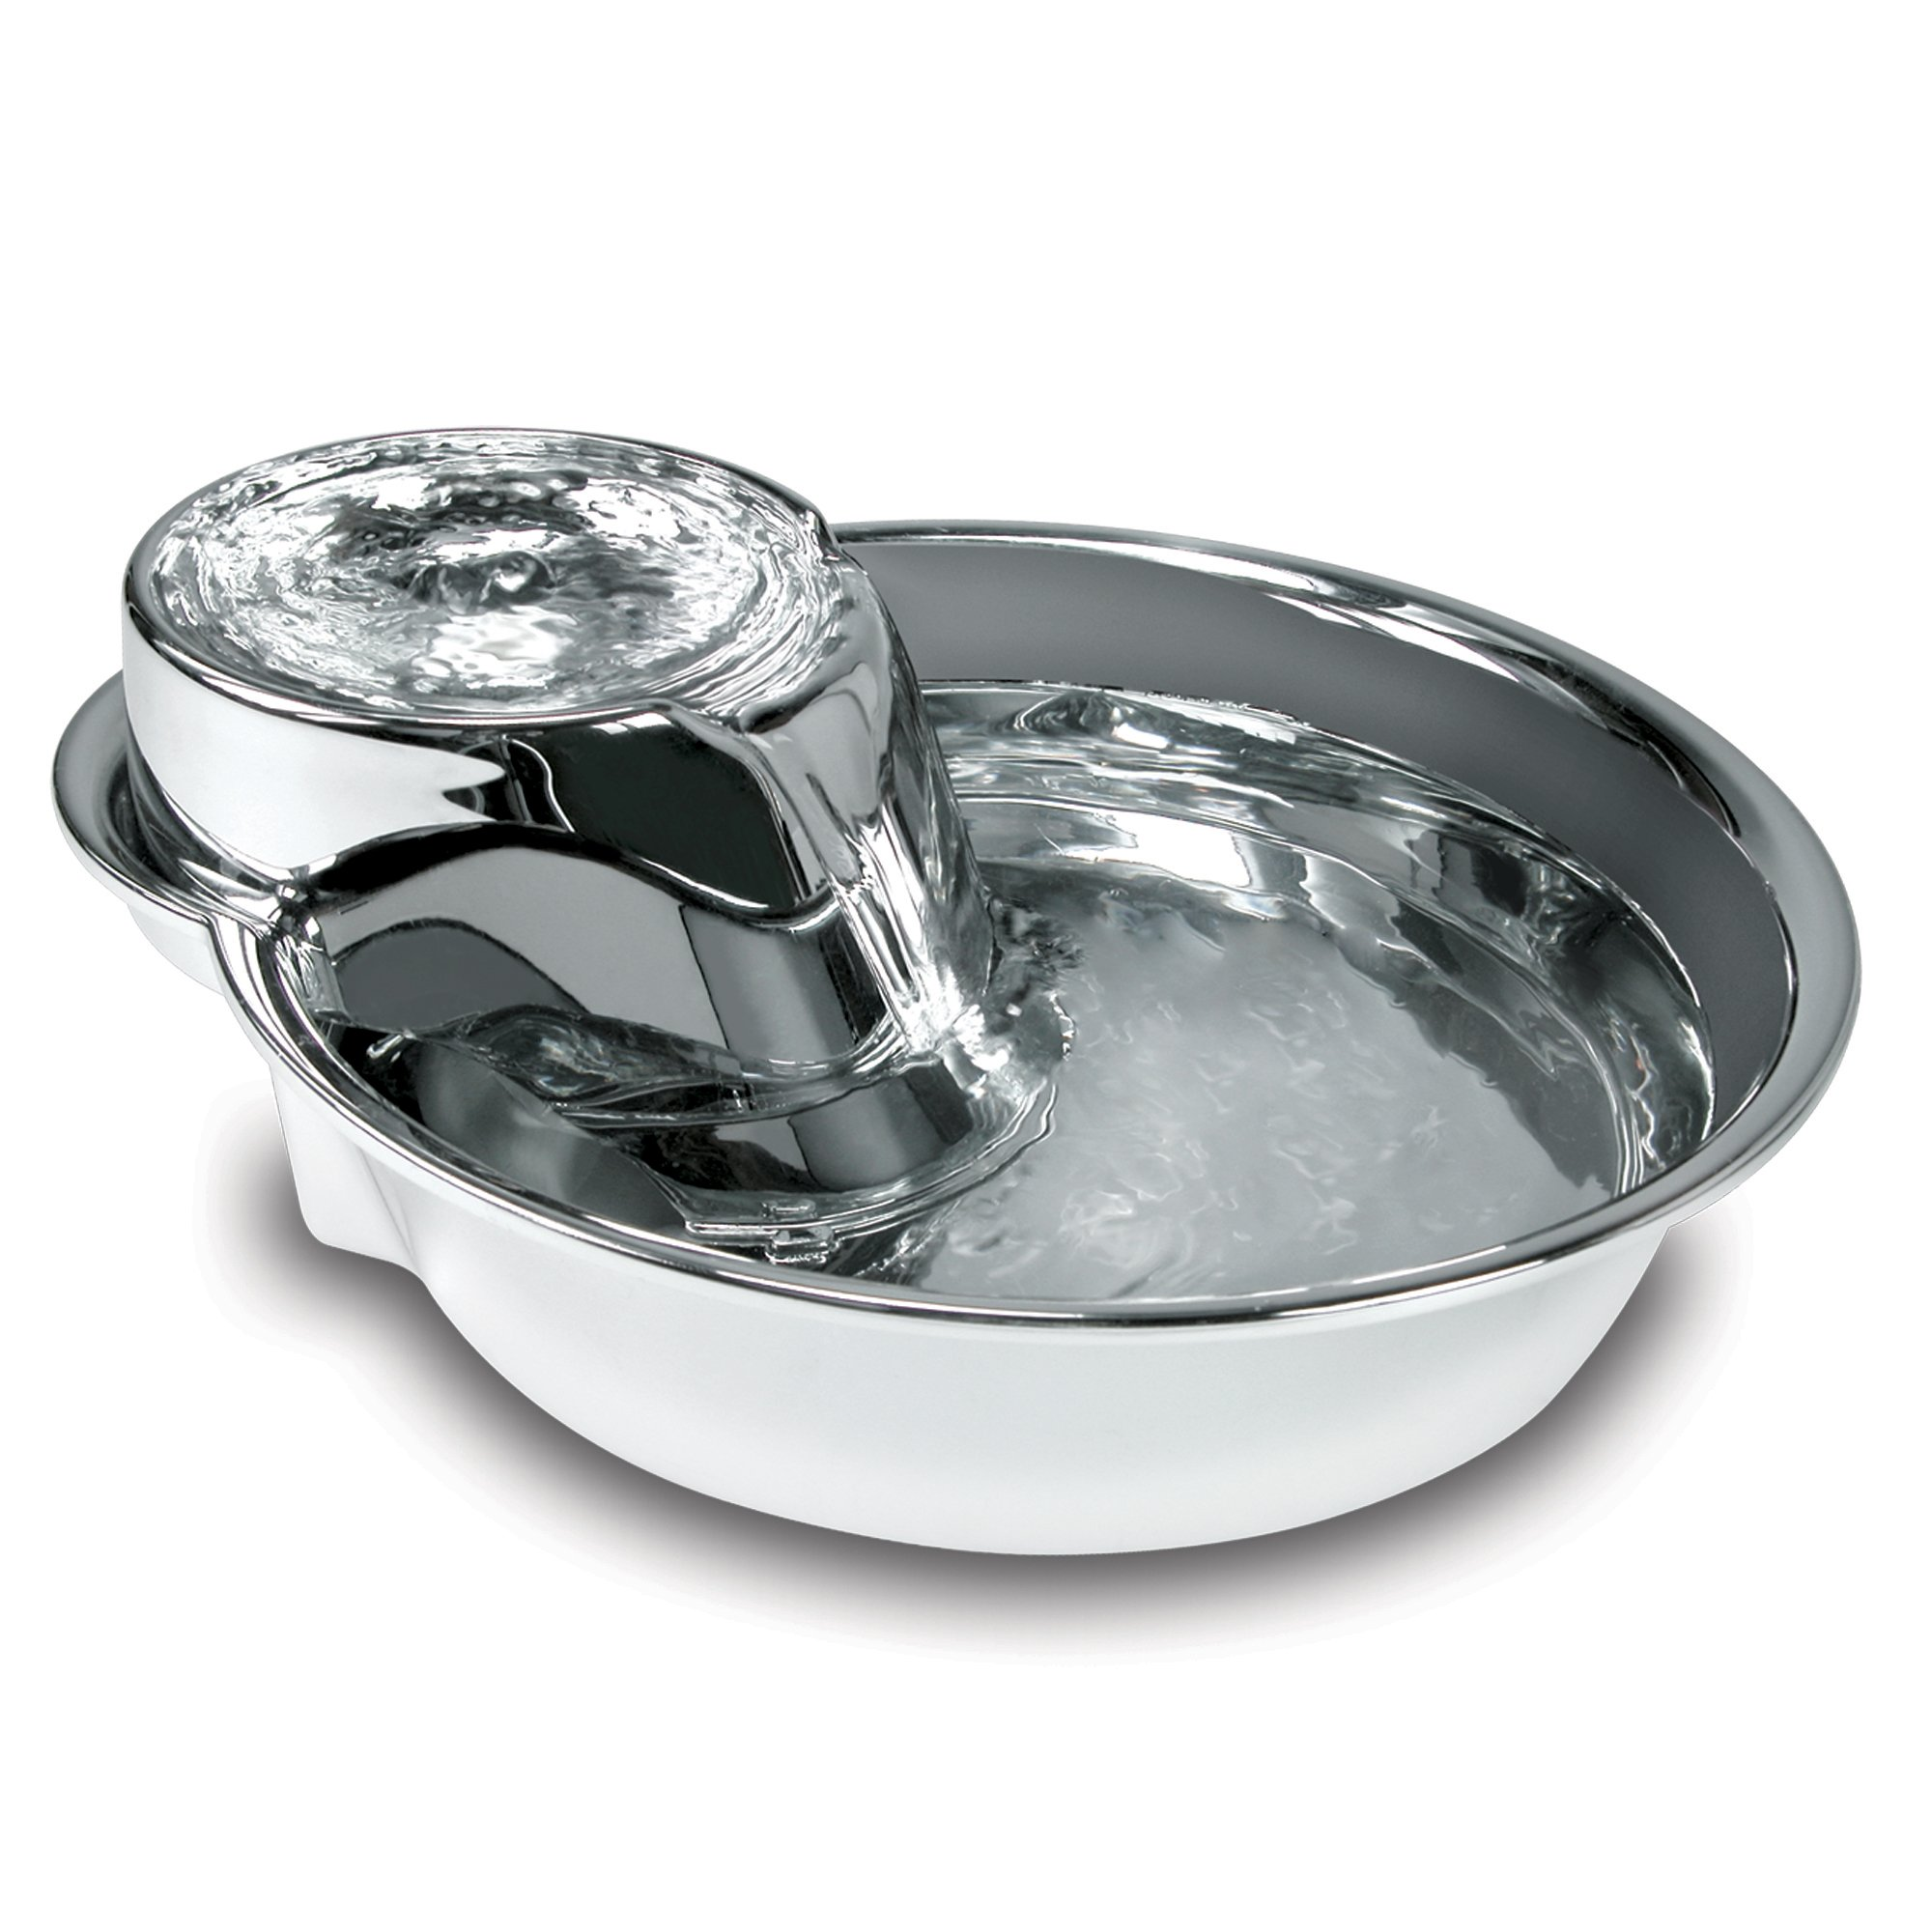 Image of Pioneer Pet Big Max Stainless Steel Pet Fountain for Dog, Large, Silver